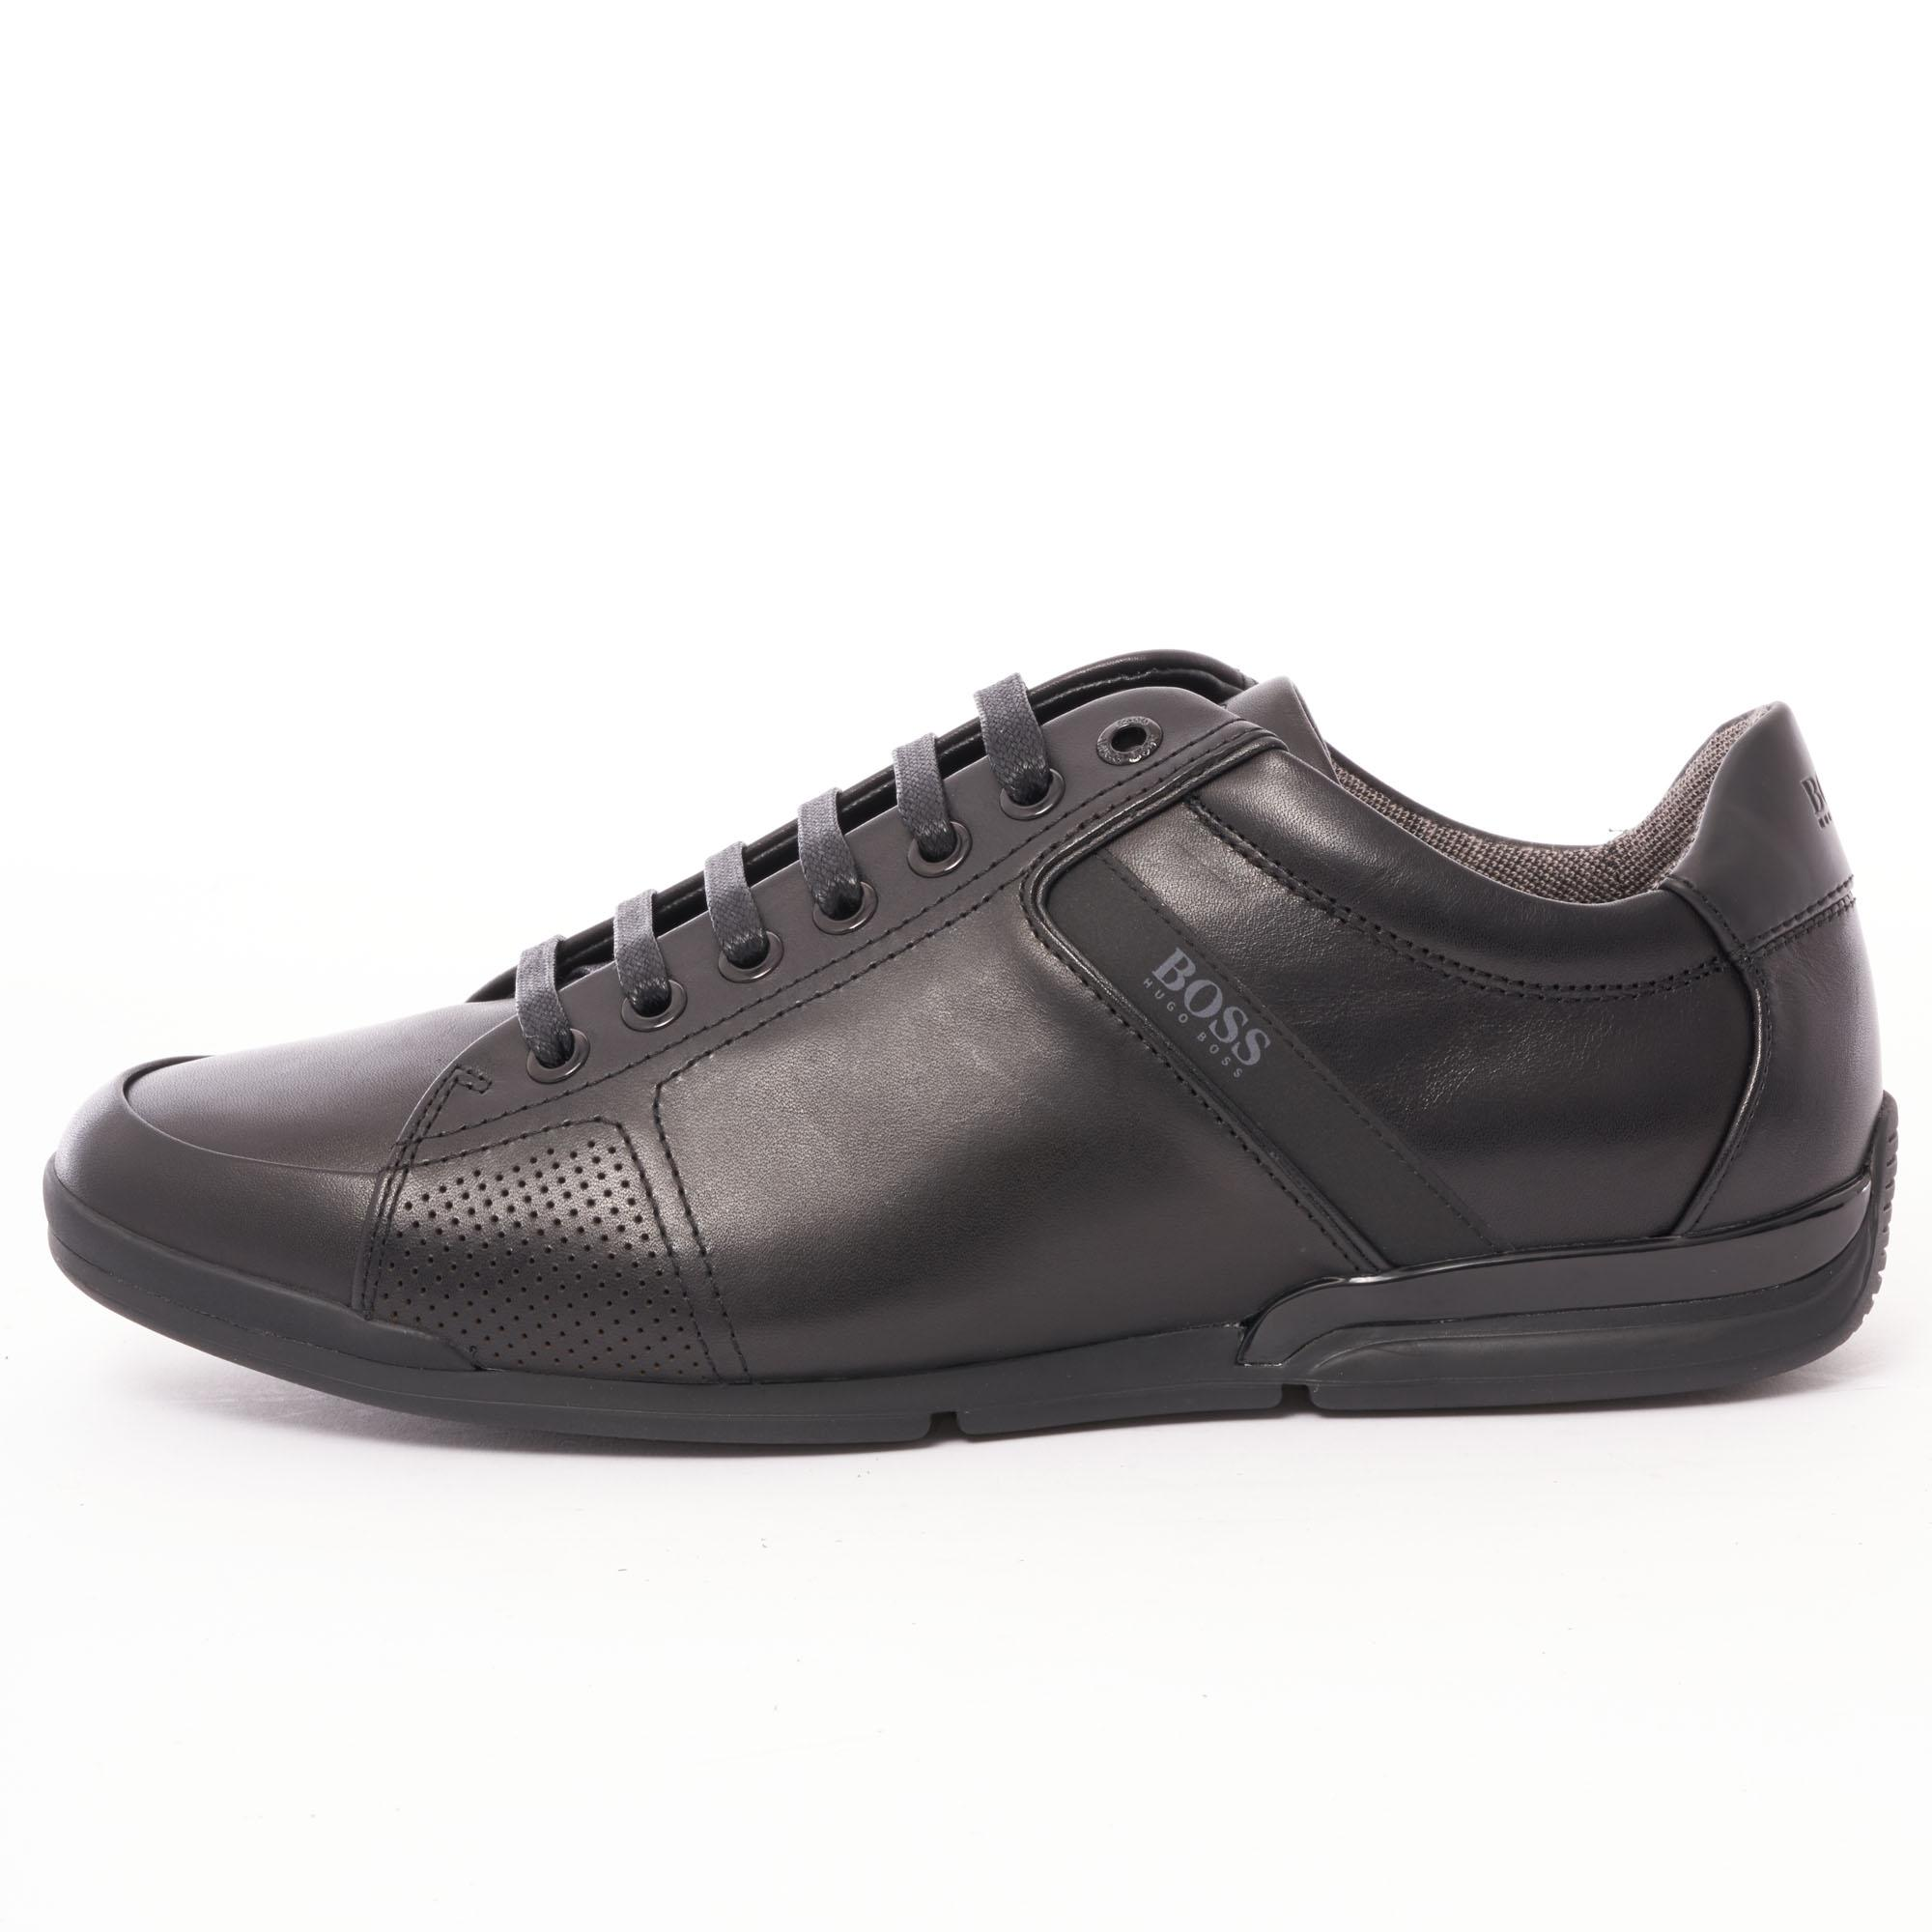 8c20466b99 BOSS - Saturn Low Lux 4 Sneakers - Black for Men - Lyst. View fullscreen